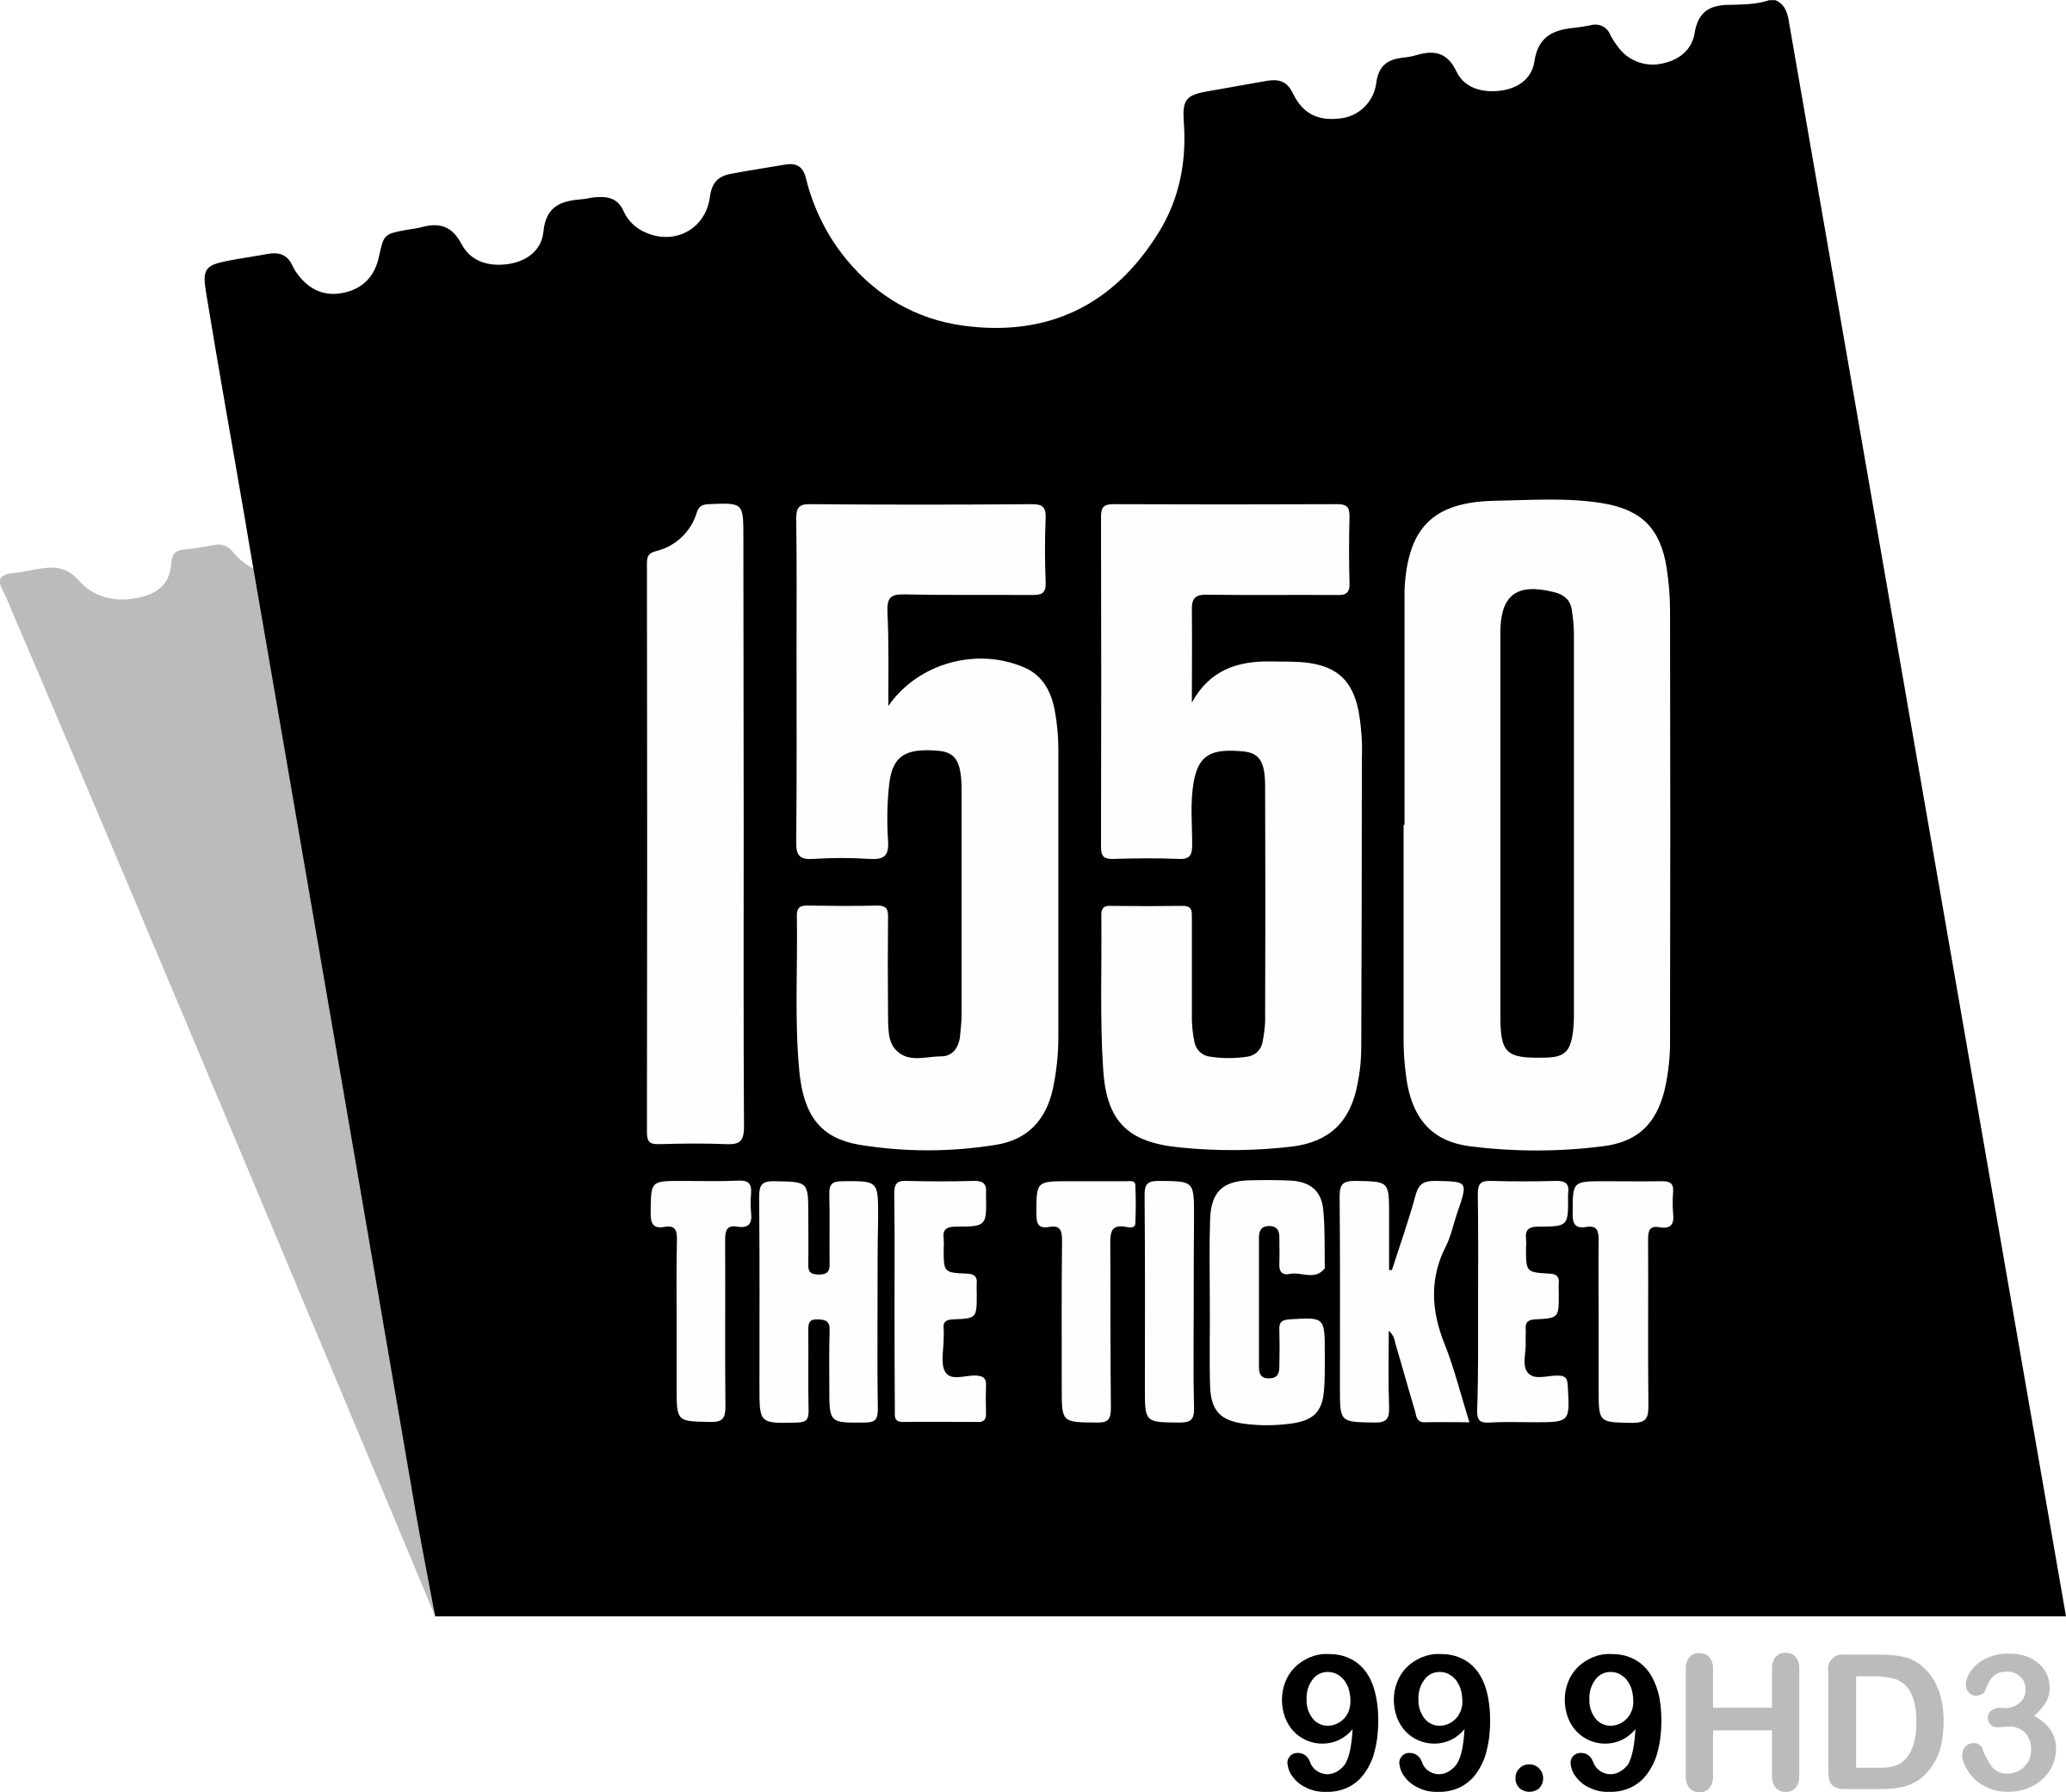 Ticket clipart svg.  the logo png